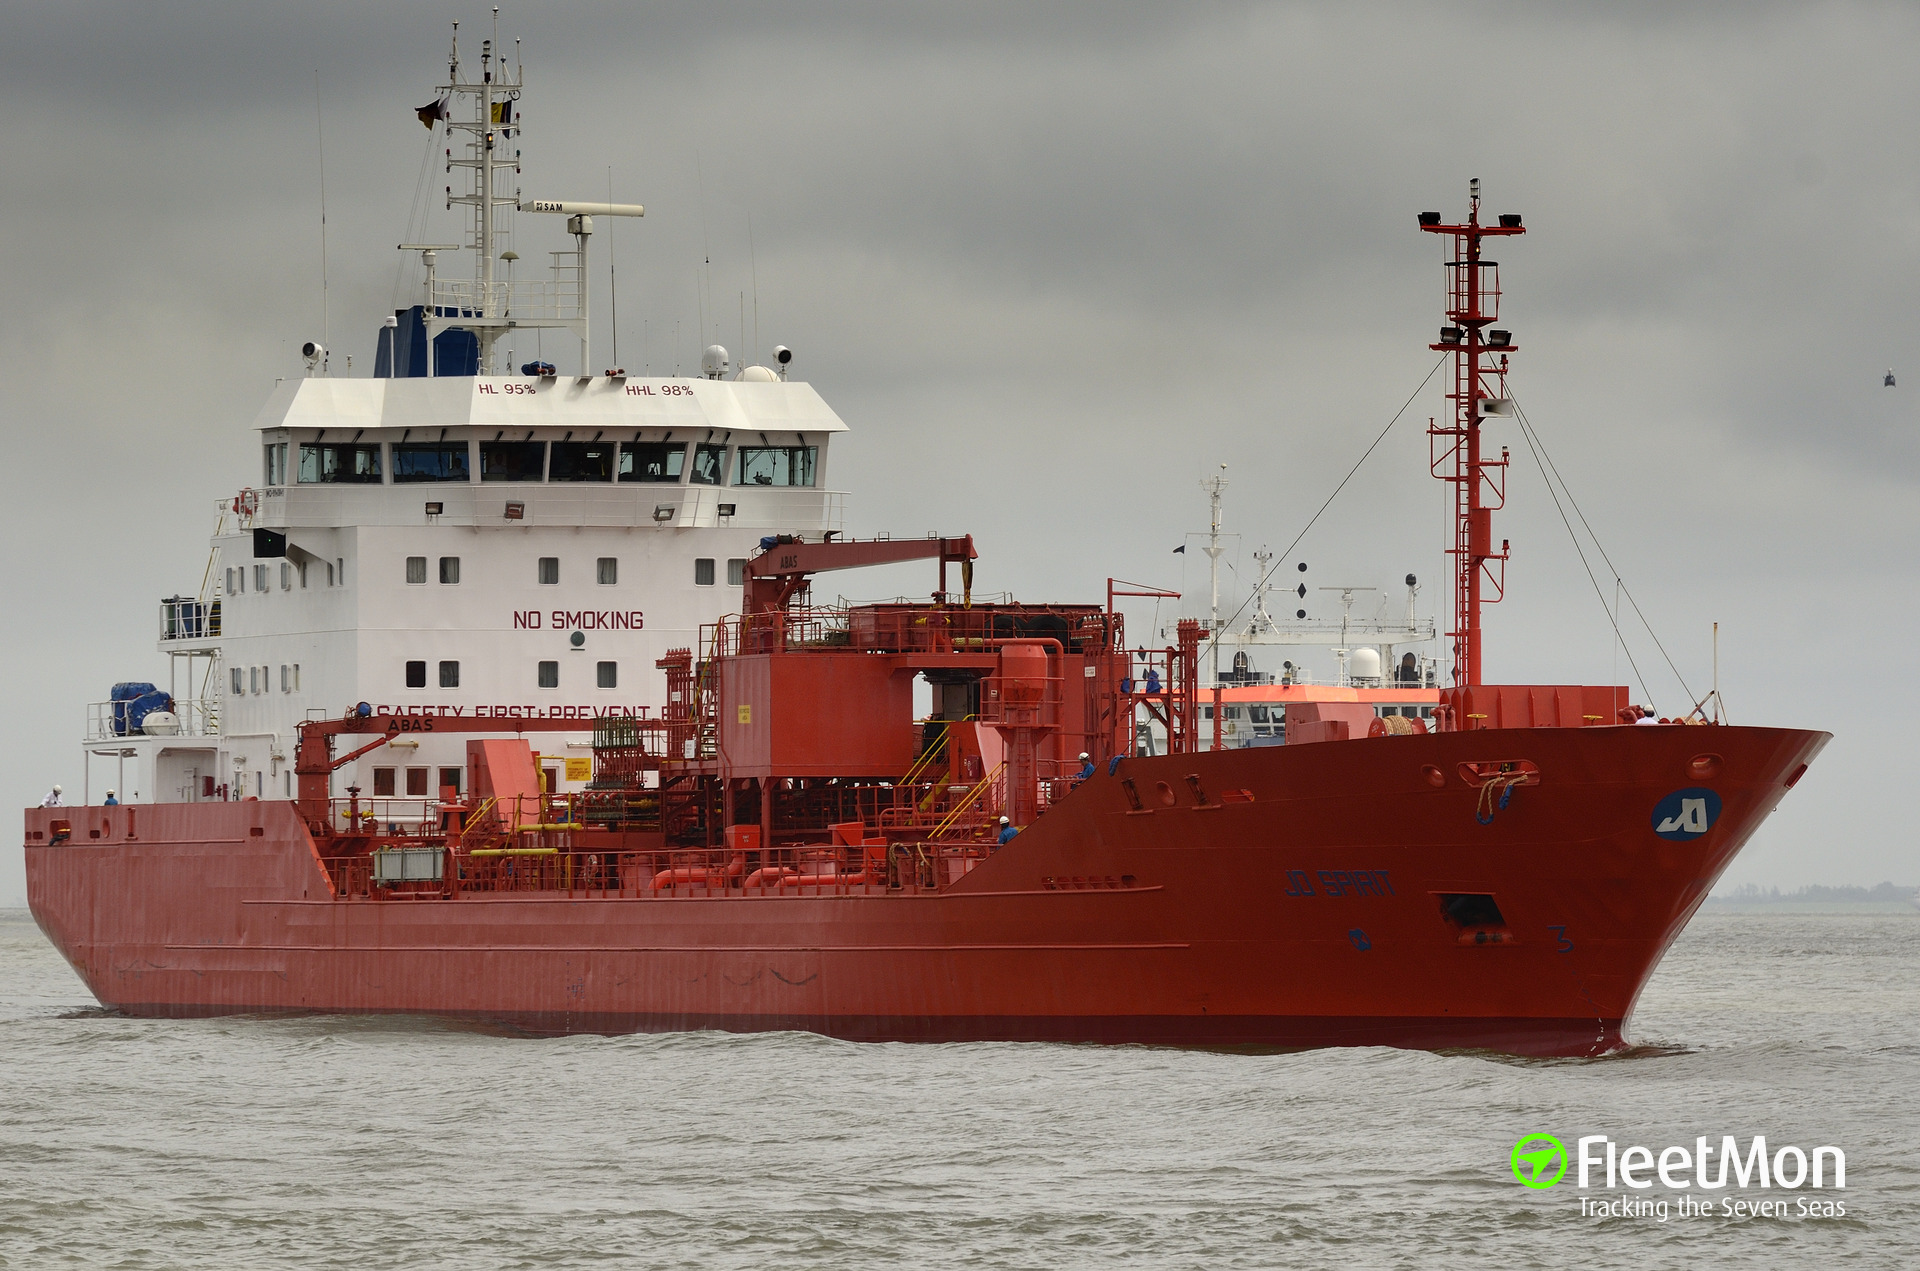 Tanker loaded with Bacardi Rum blocked the channel, Montreal